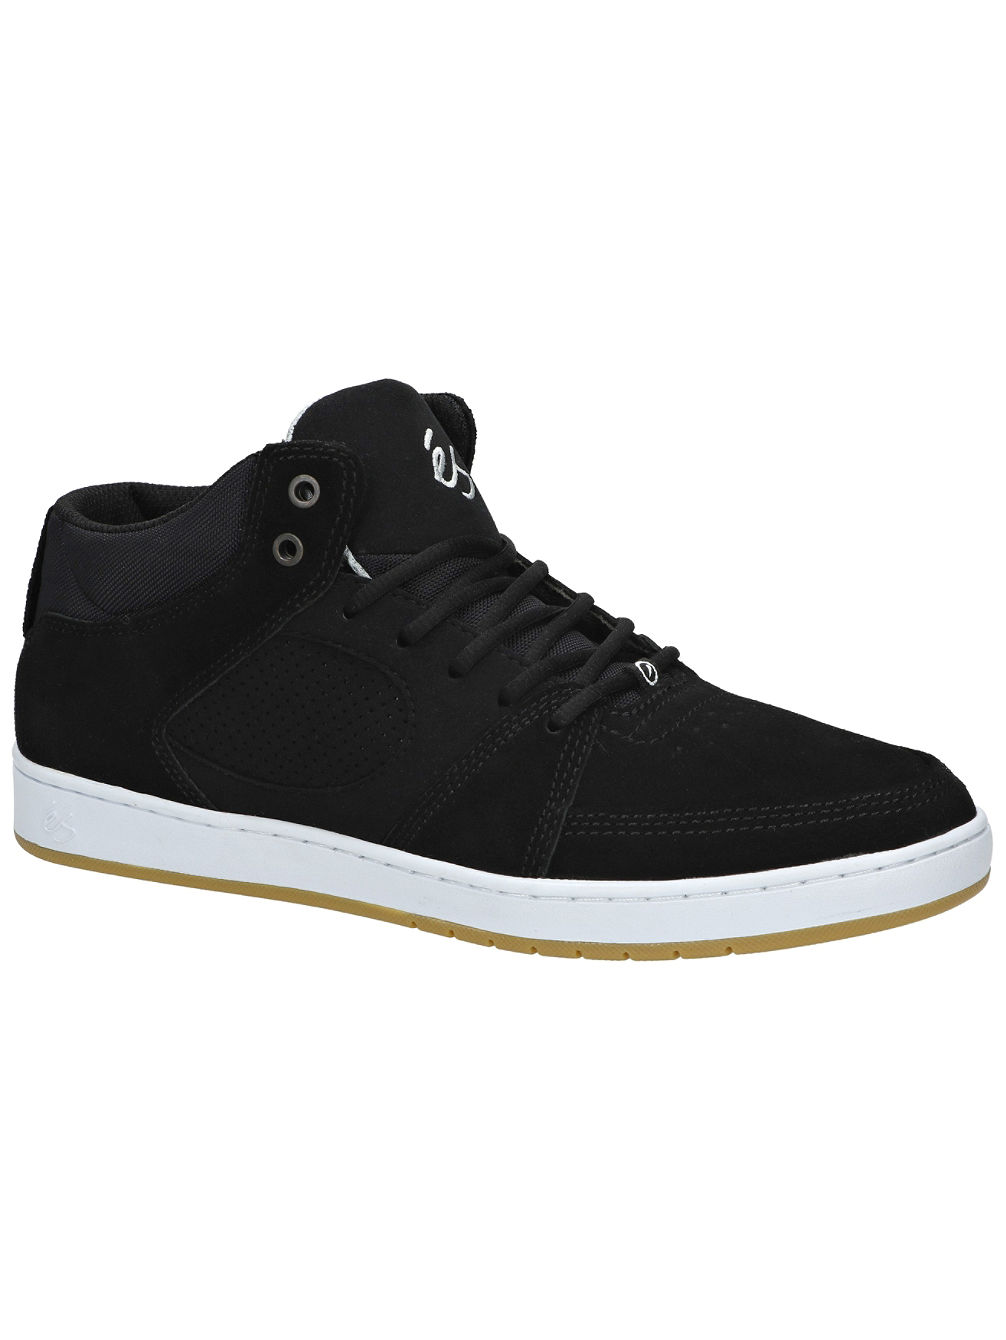 Accel Slim Mid Skate Shoes